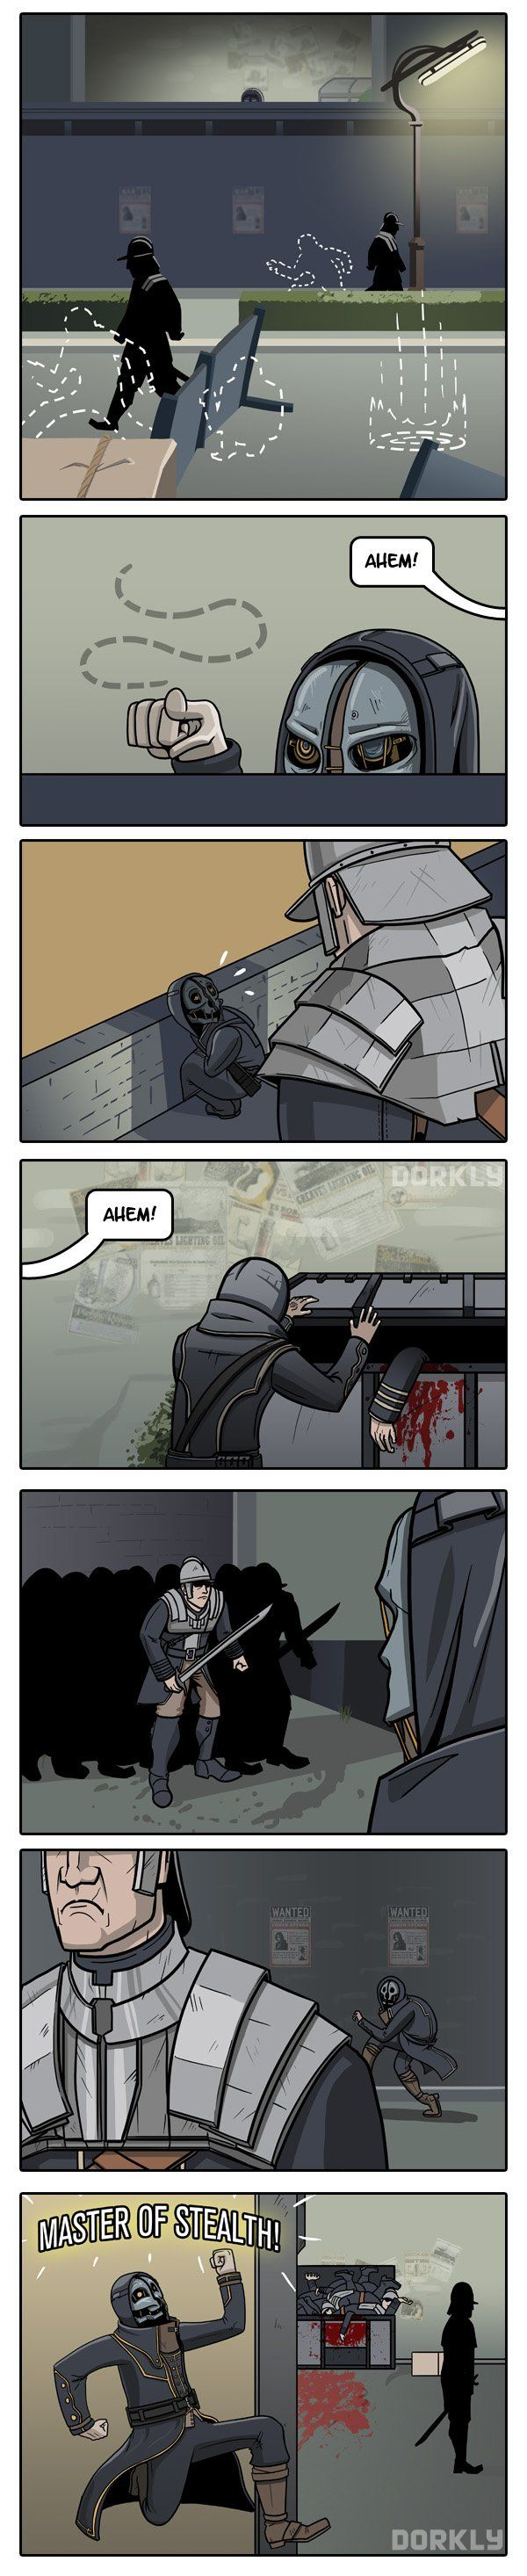 The Master of Stealth: Dishonored-Style via Reddit user PoorMr